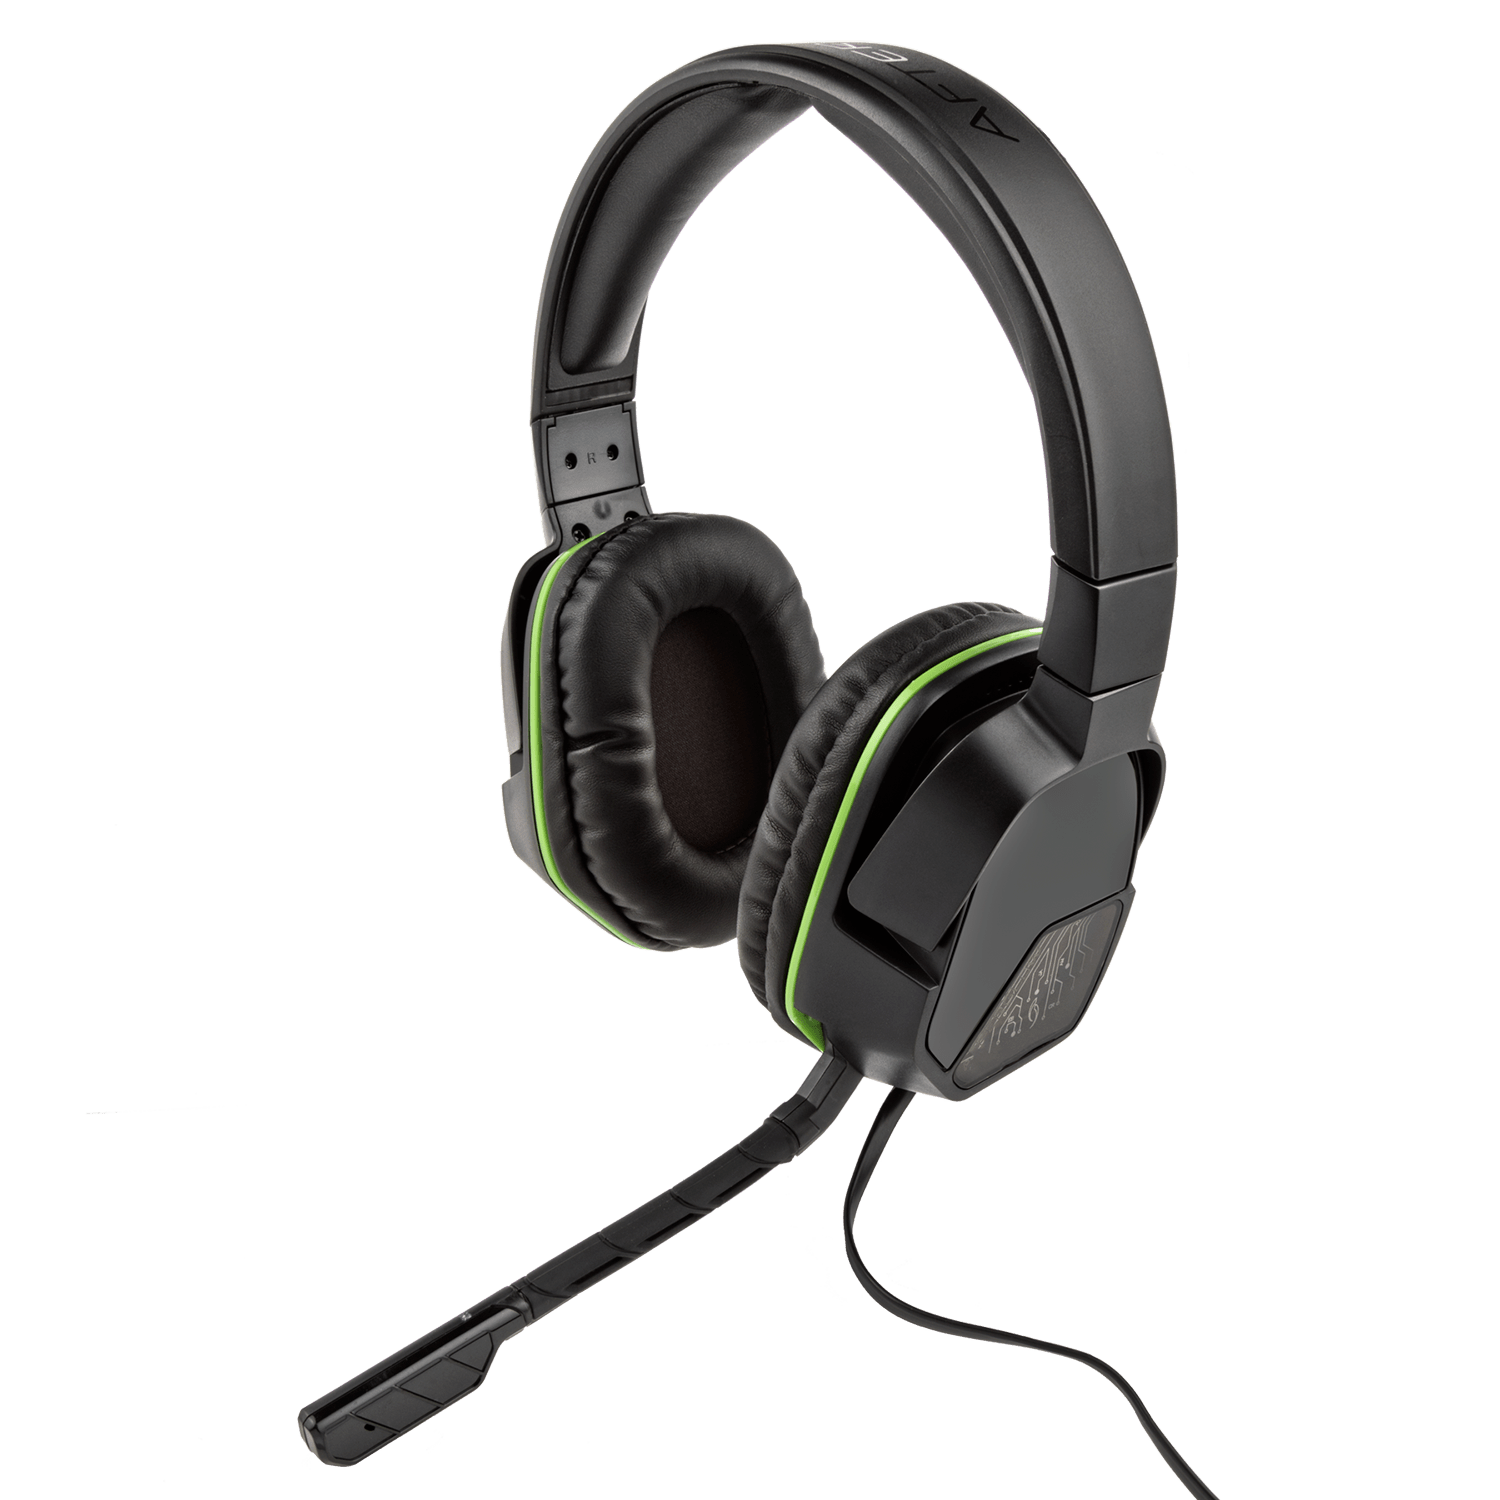 medium resolution of pdp xbox one afterglow lvl 3 stereo gaming headset black 048 041 headset for